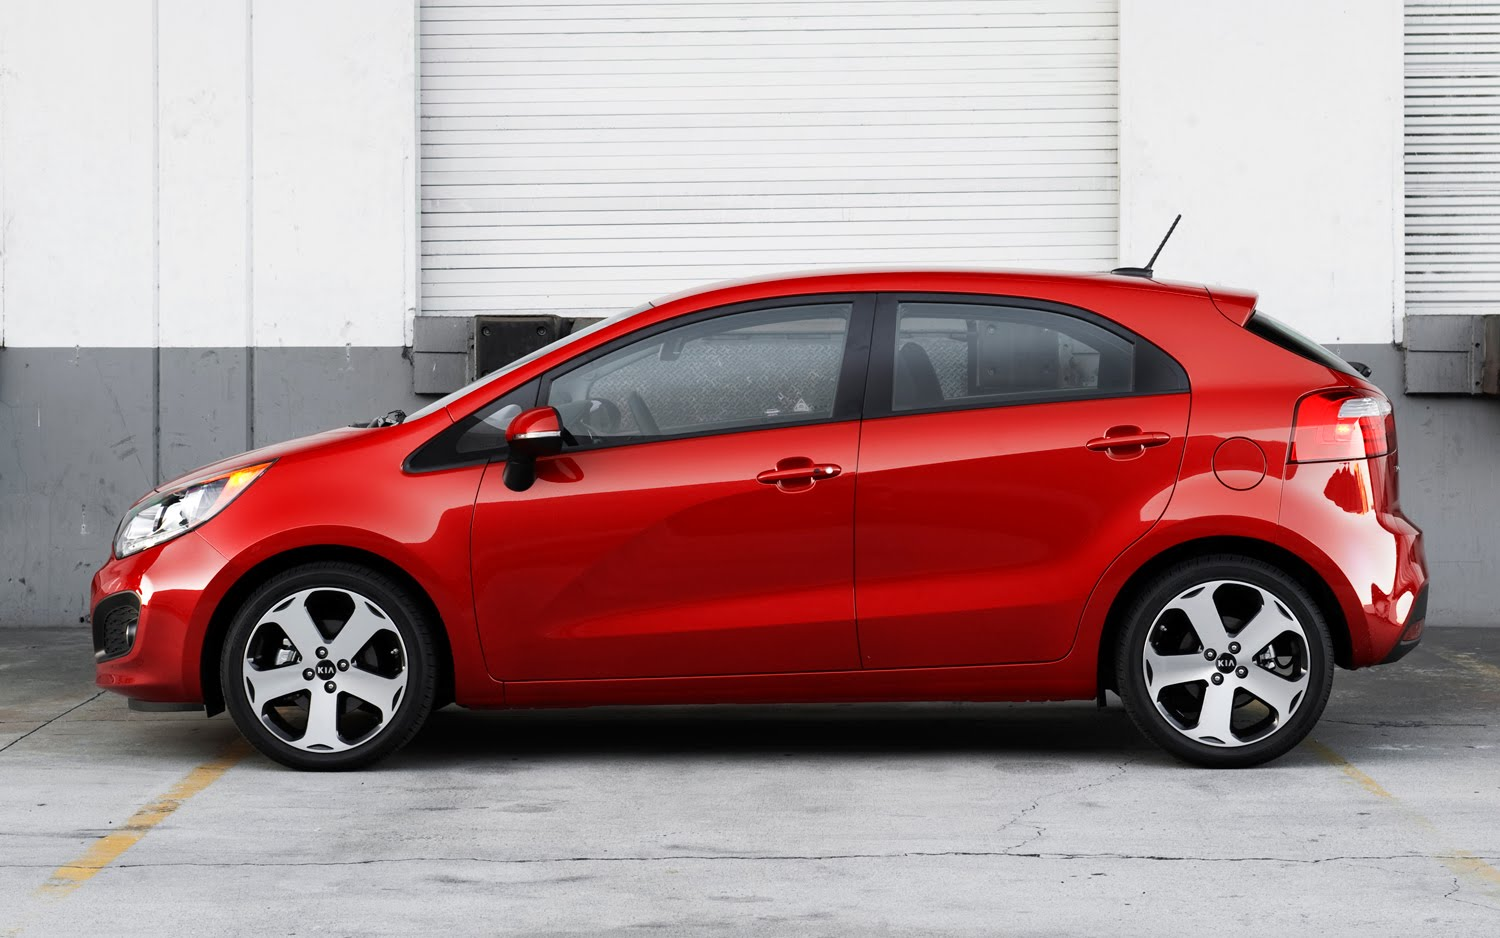 2016 Kia Rio Wallpaper Designs Attachment 13316   Grivucom 1500x938